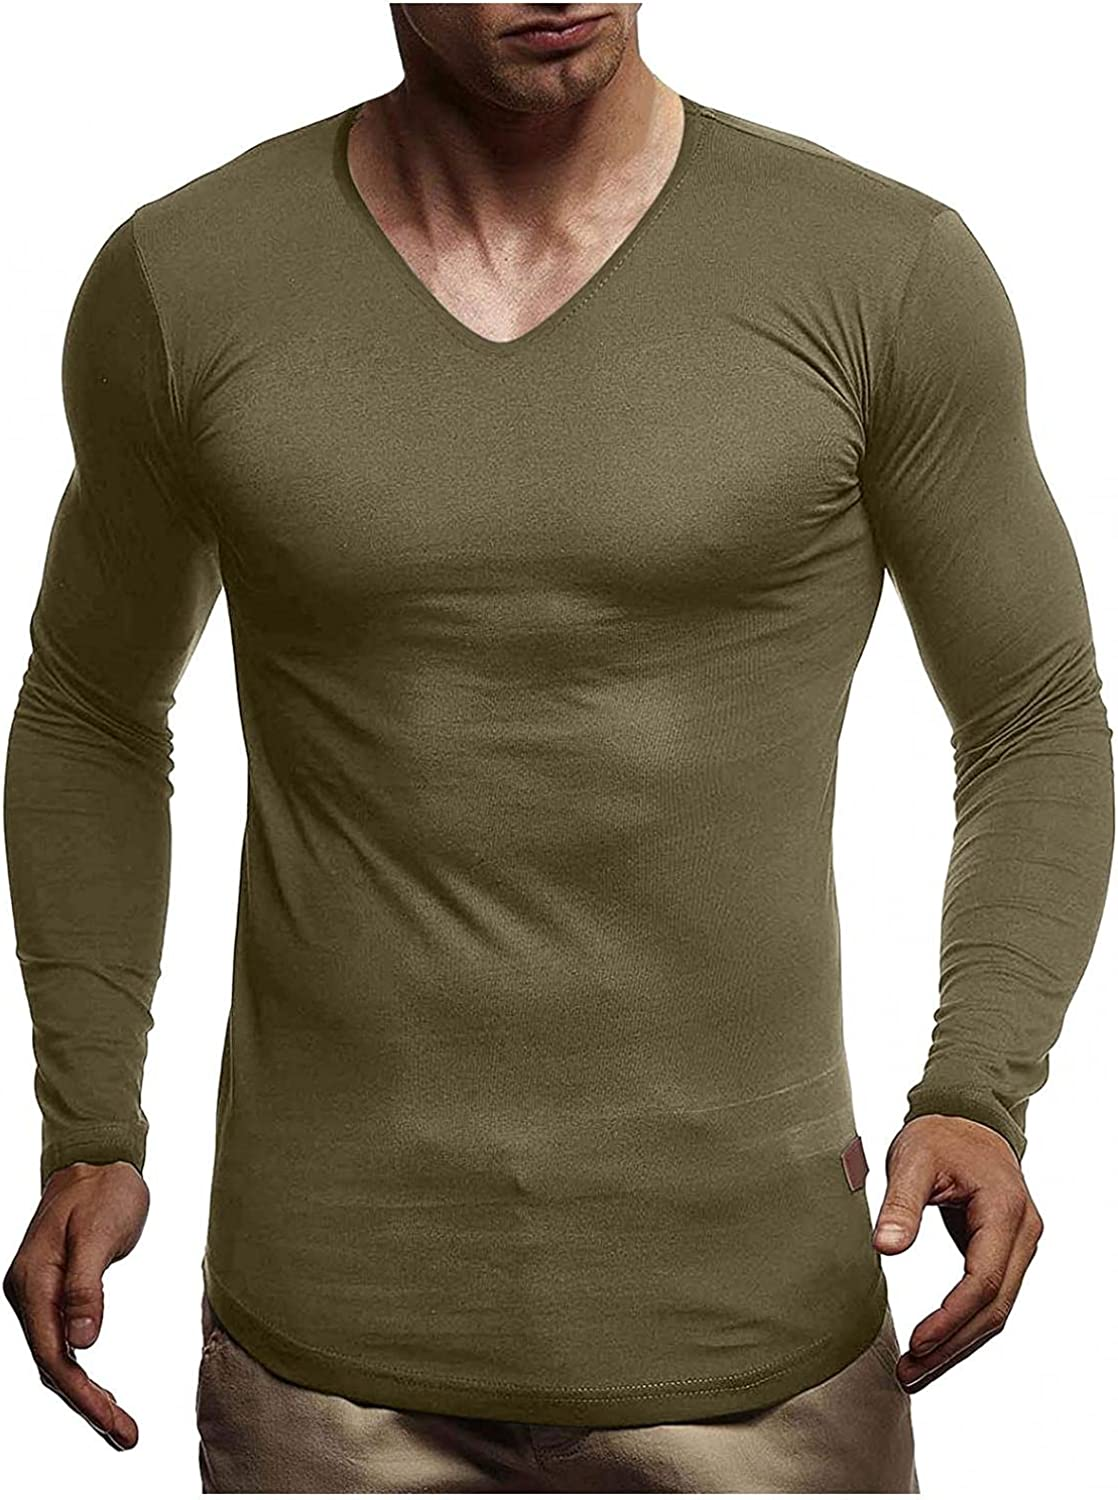 WUAI-Men Casual Slim Fit Basic Henley Shirts V-Neck Long Sleeve Muscle Bodybuilding Casual Cotton Plain Tee Tops